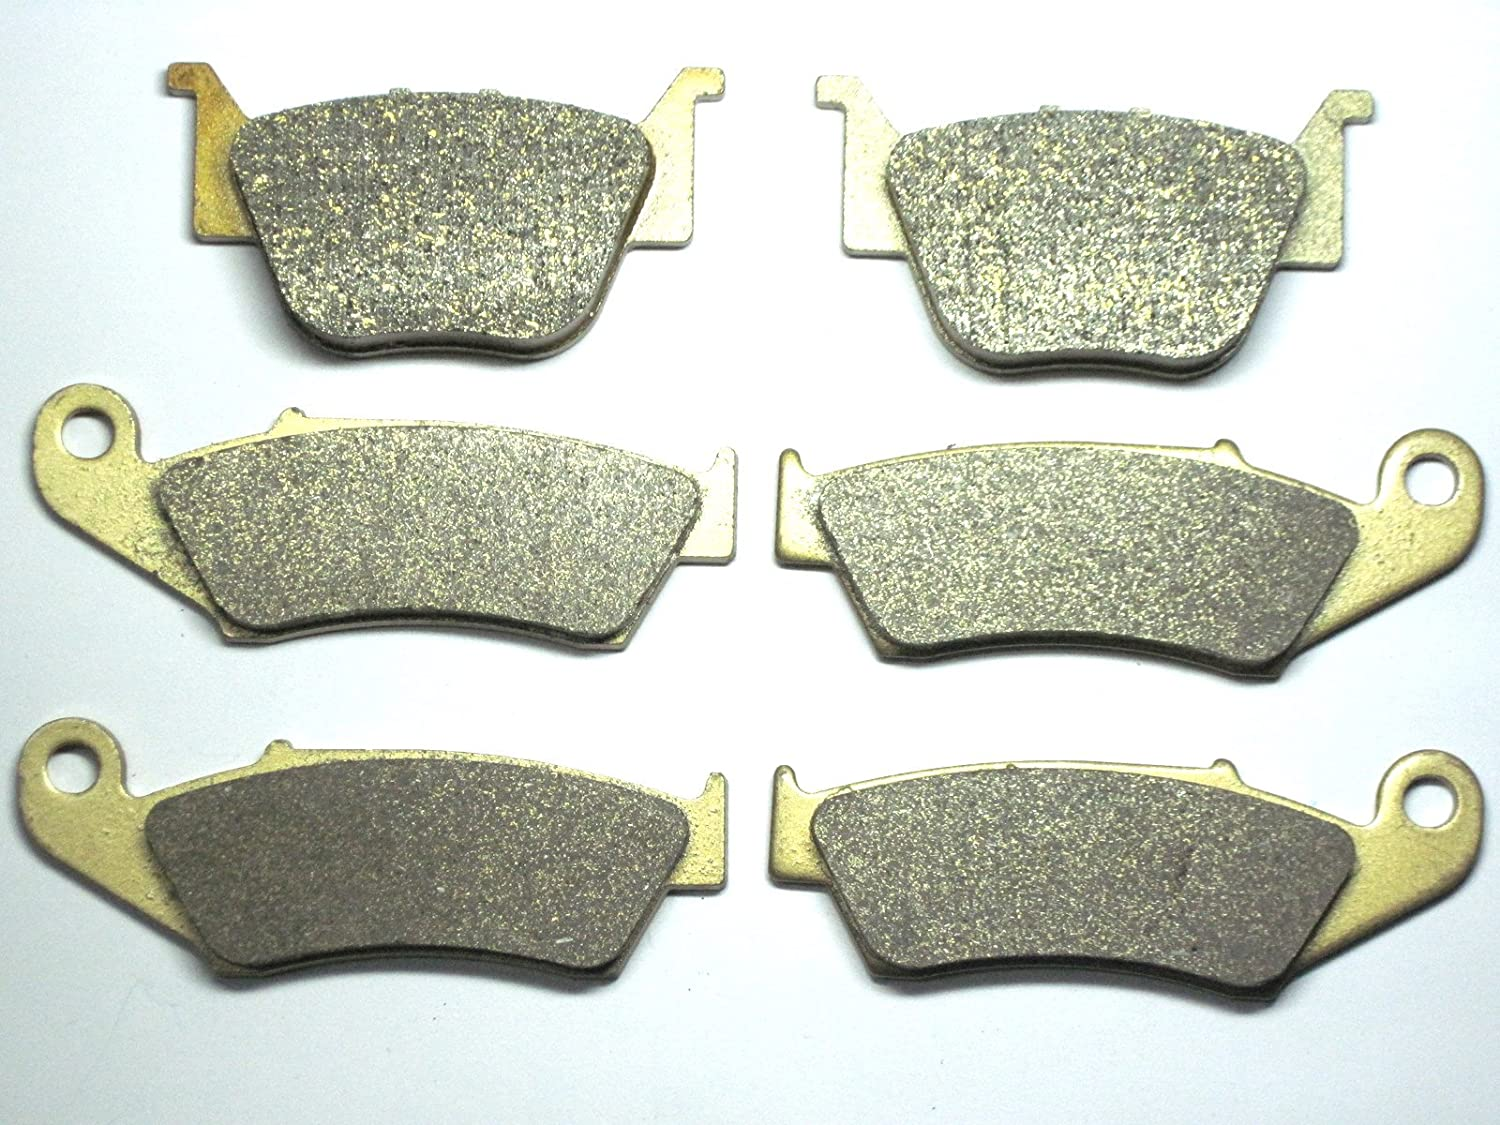 Front Rear Brake Pads For Honda TRX 450 R 2004 2005 2006 2007 2008 2009 Brakes